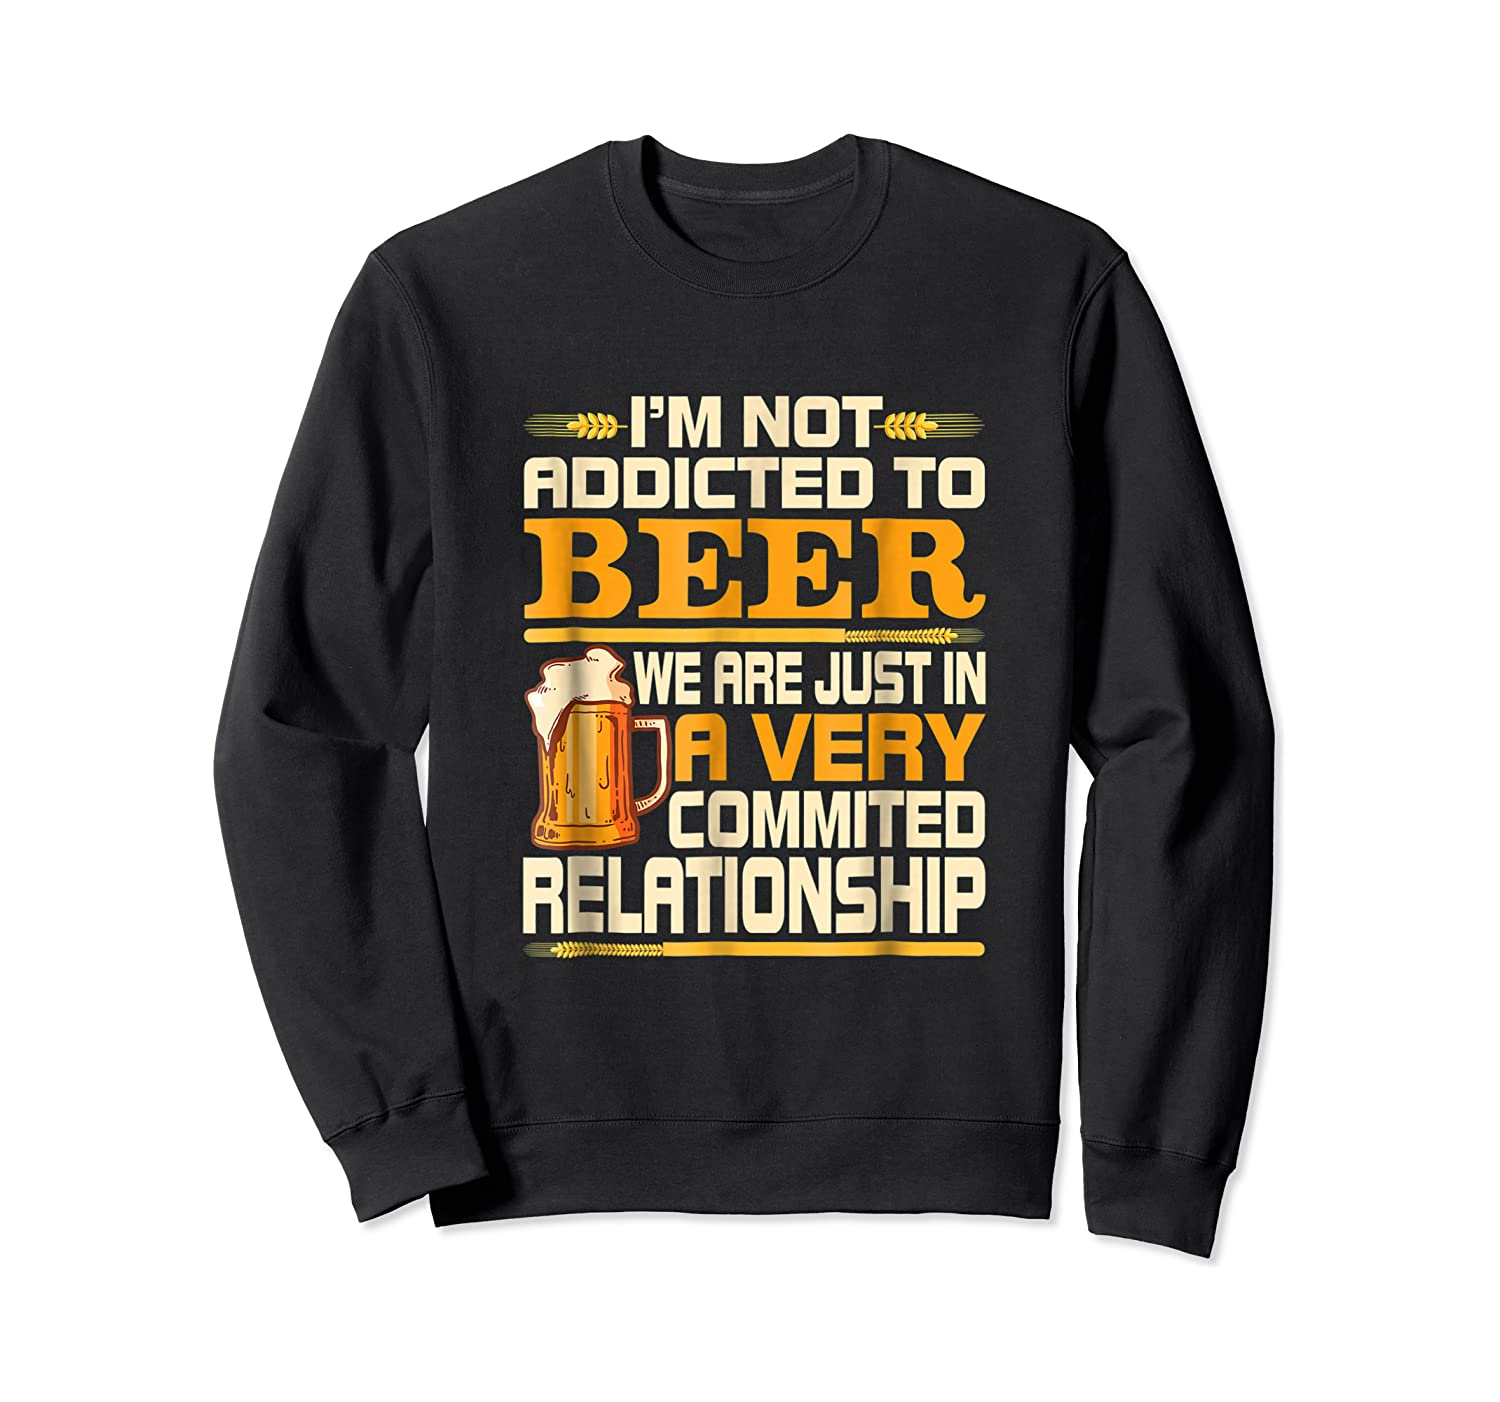 I'm Not Addicted To Beer Funny Beer Addicted Drinking Shirts Crewneck Sweater